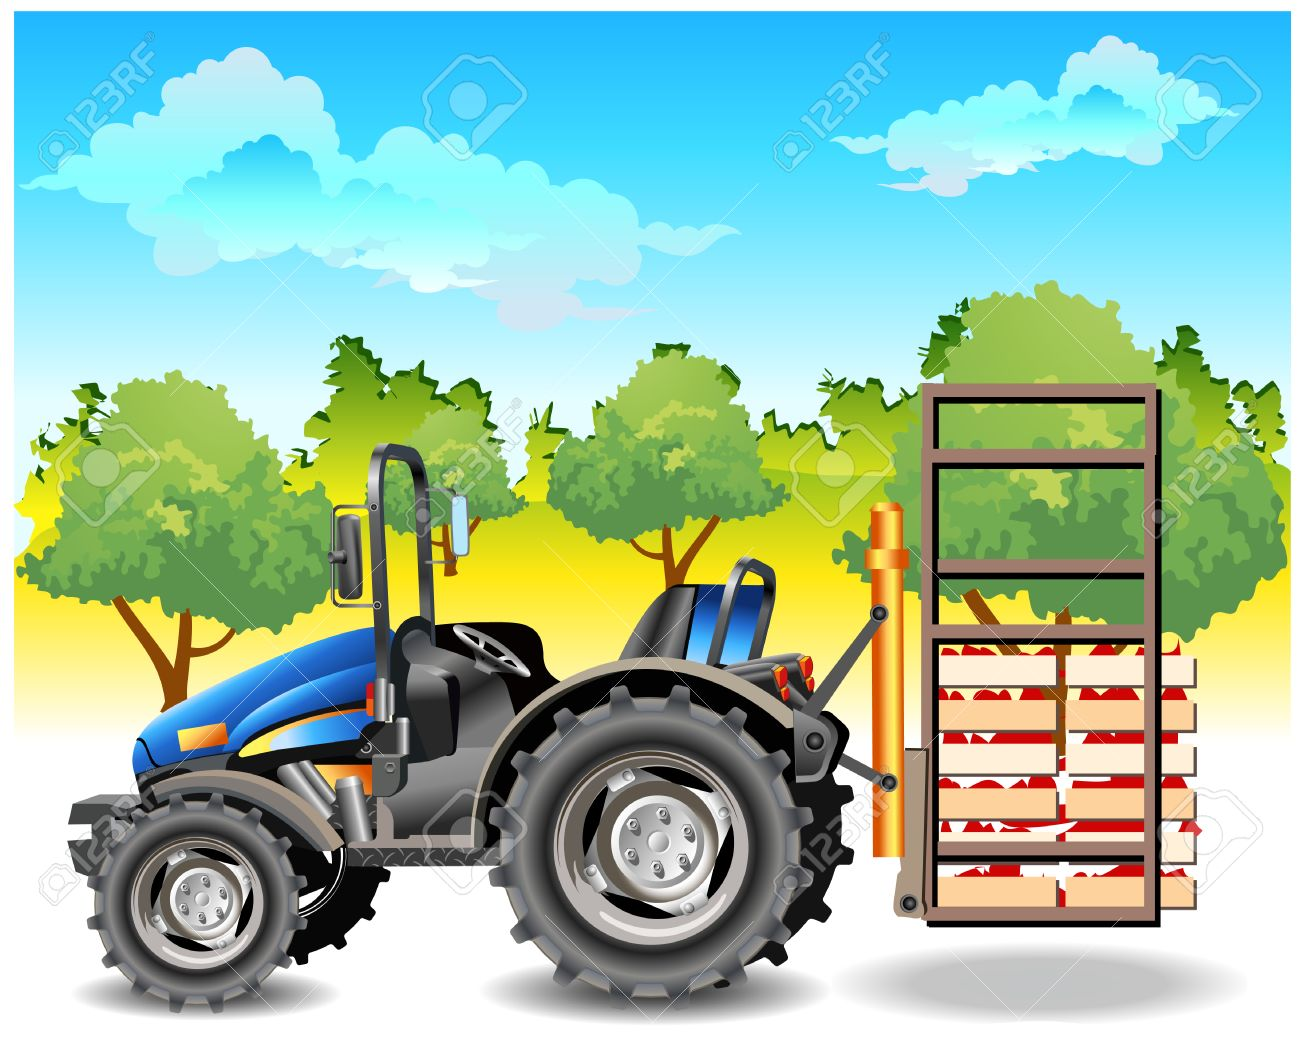 Agricultural machine, tractor in dark blue color, on field, vector an illustration Stock Vector - 4483884